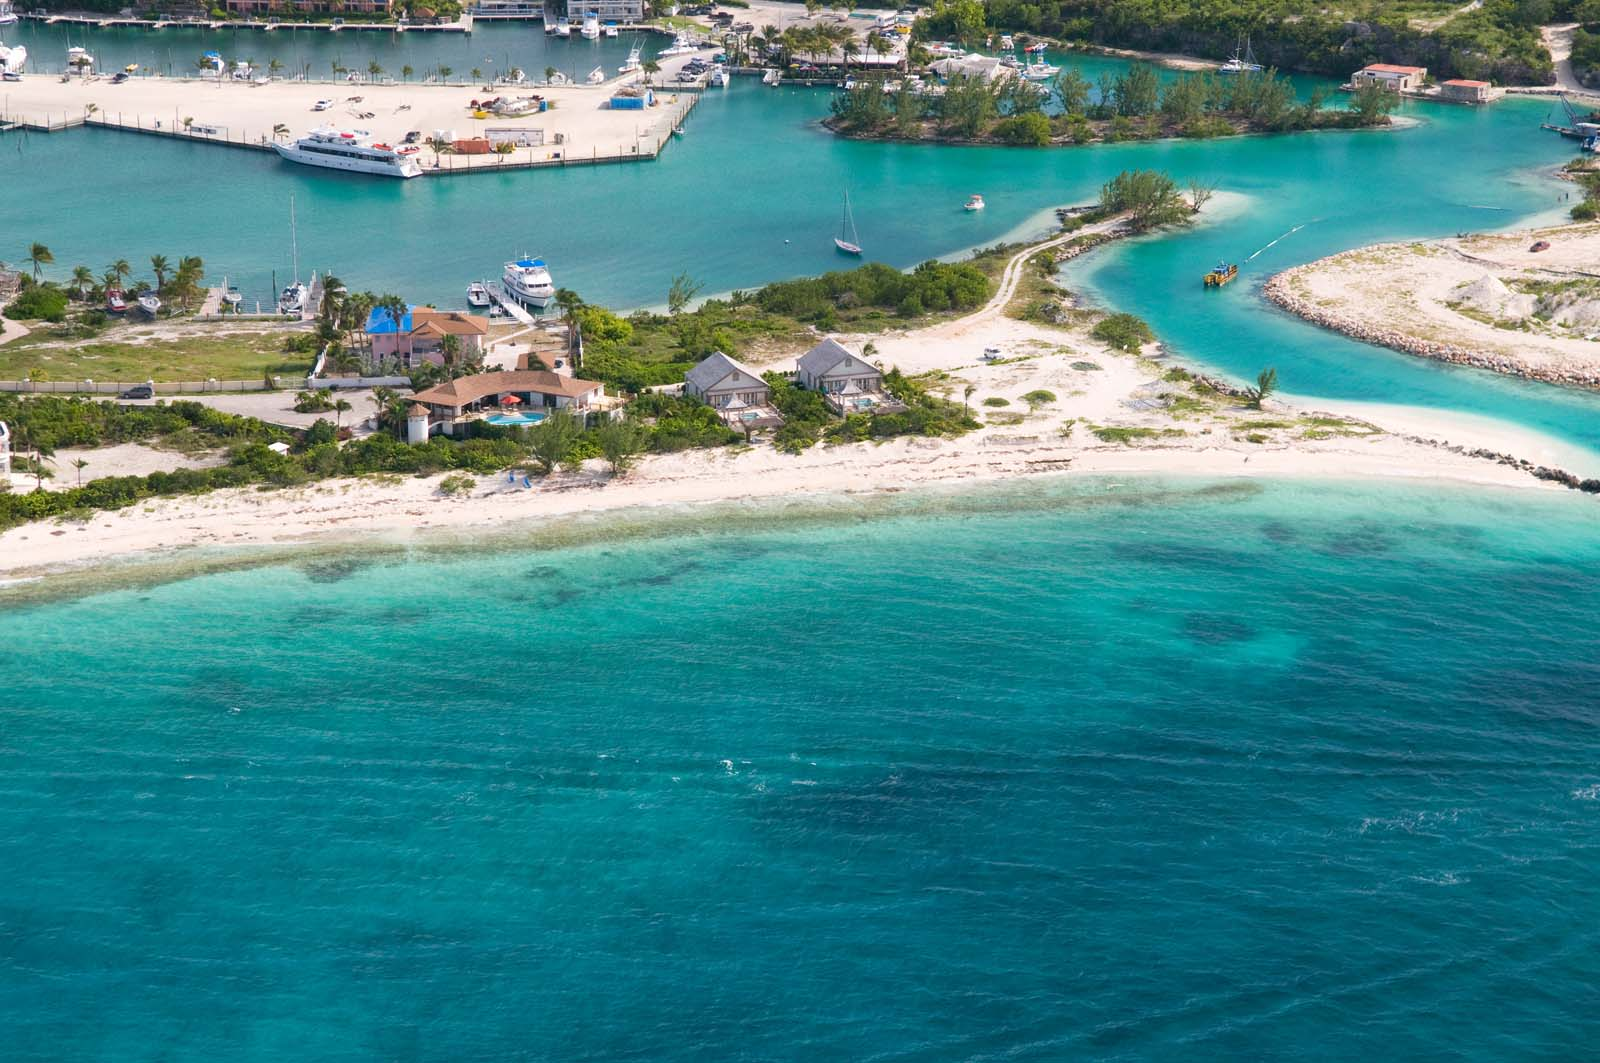 Callaloo Cottage Grace Bay Beach Providenciales Provo Turks And Caicos Islands Caribbean